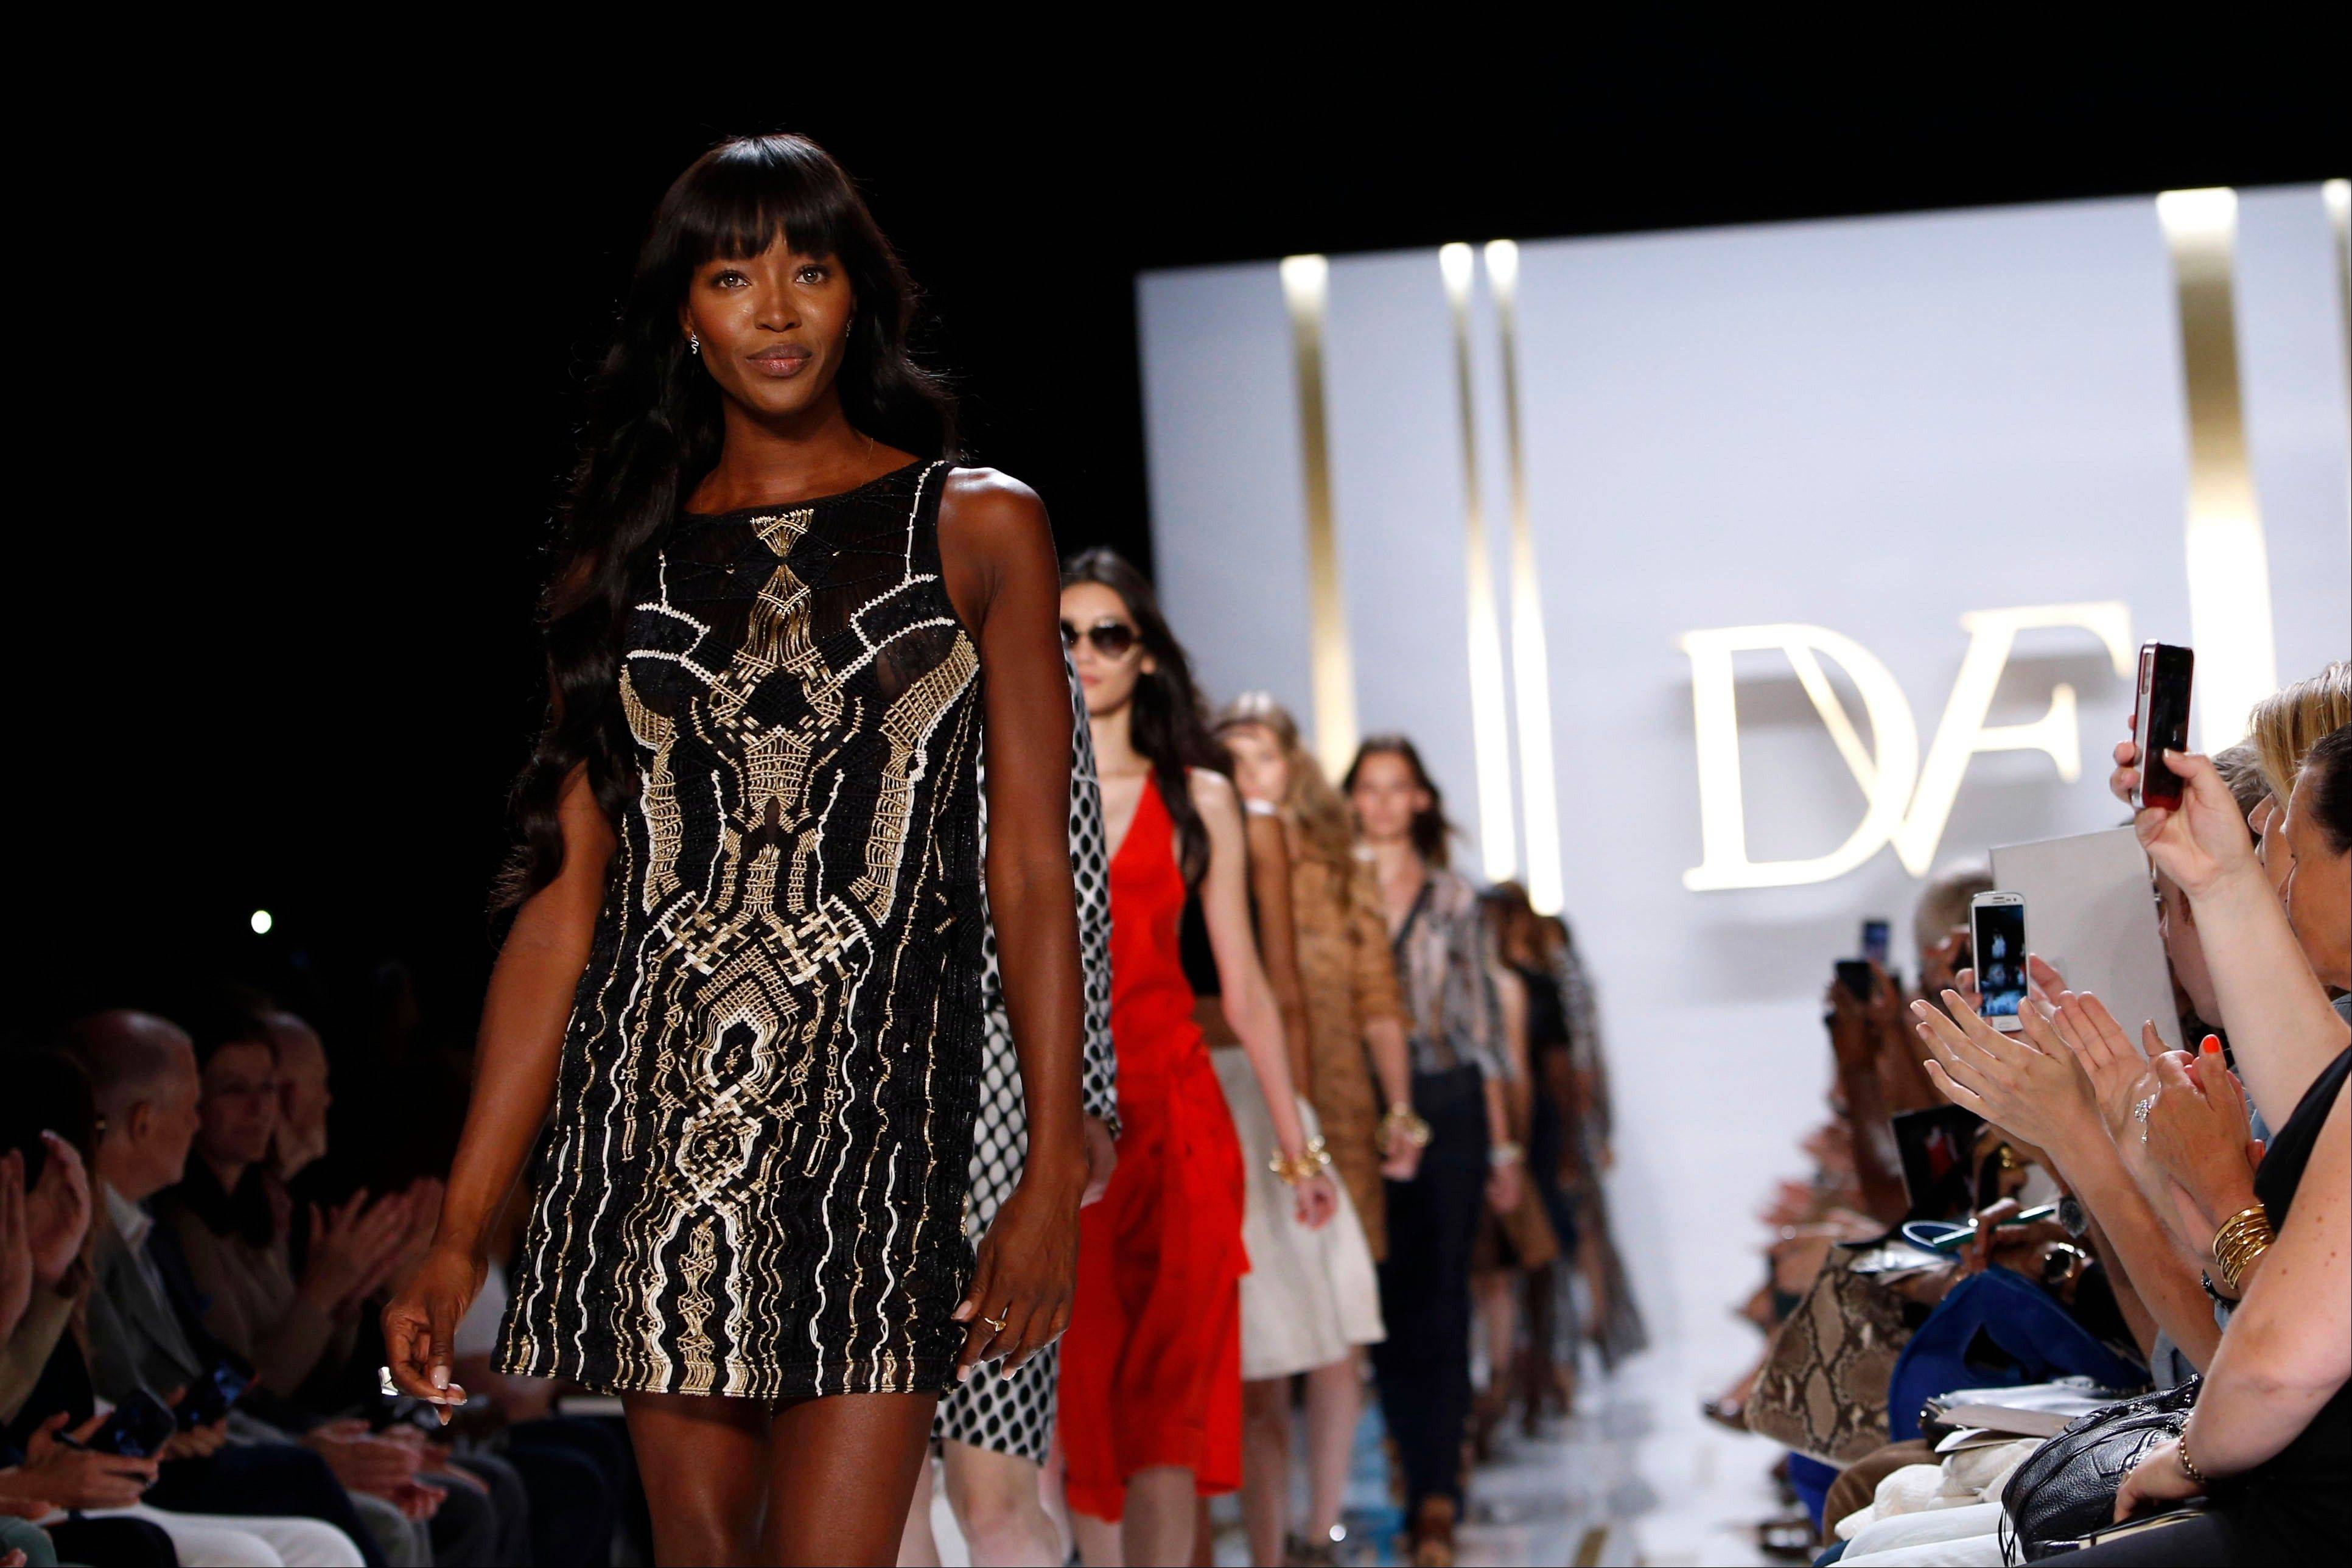 This Sept. 8, 2013 file photo shows model Naomi Campbell walking the runway in the Diane von Furstenburg Spring 2014 collection show during Fashion Week in New York. Iman and Naomi Campbell are legendary supermodels, but this year they lent themselves to something different: promoting diversity on the runway, by calling out designers whose catwalks were almost completely white. The two women joined modeling agent Bethann Hardison in their Balance Diversity campaign. Iman, now 58, said she was shocked to hear that there were fewer black models on the runway than when she stopped modeling in 1989.